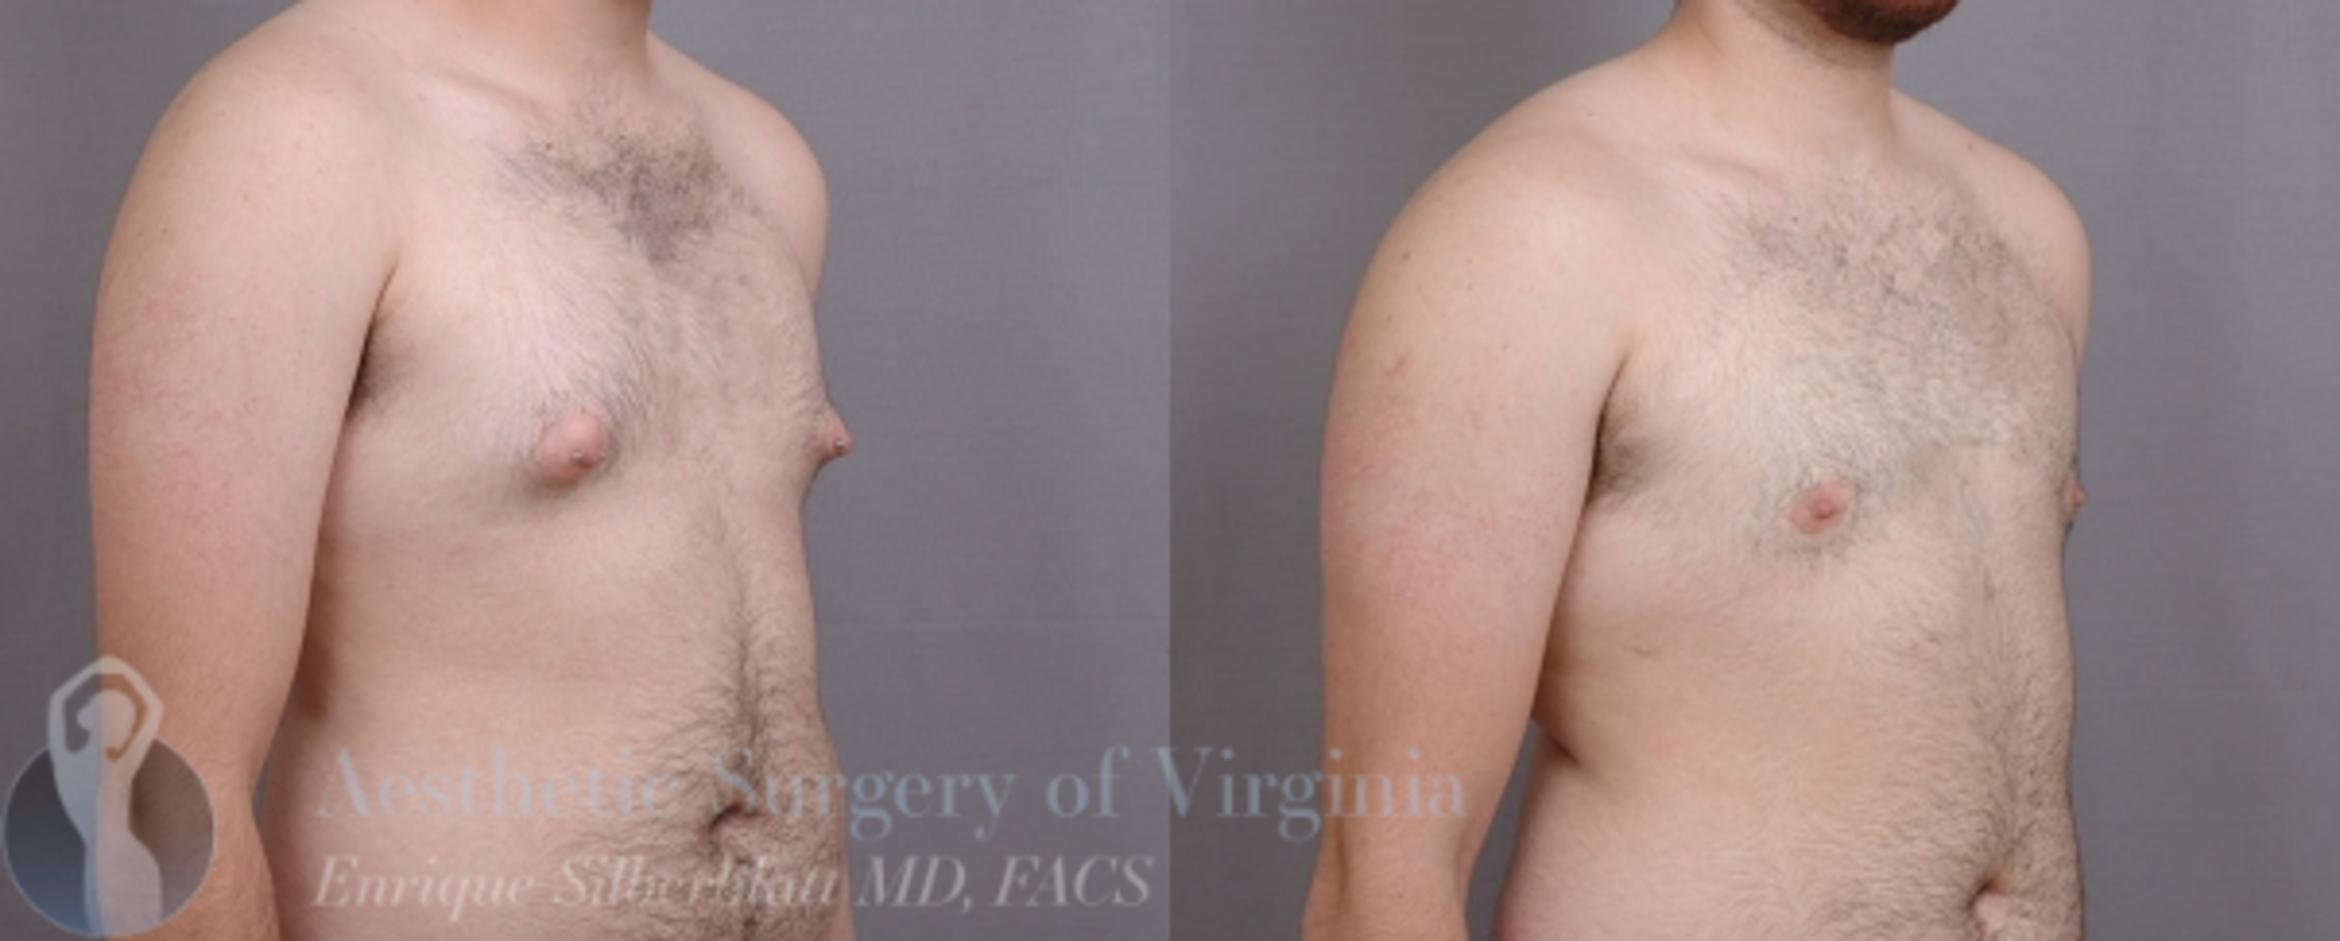 Female to Male Breast Surgery Case 58 Before & After View #4 | Roanoke, VA | Aesthetic Surgery of Virginia: Enrique Silberblatt, MD